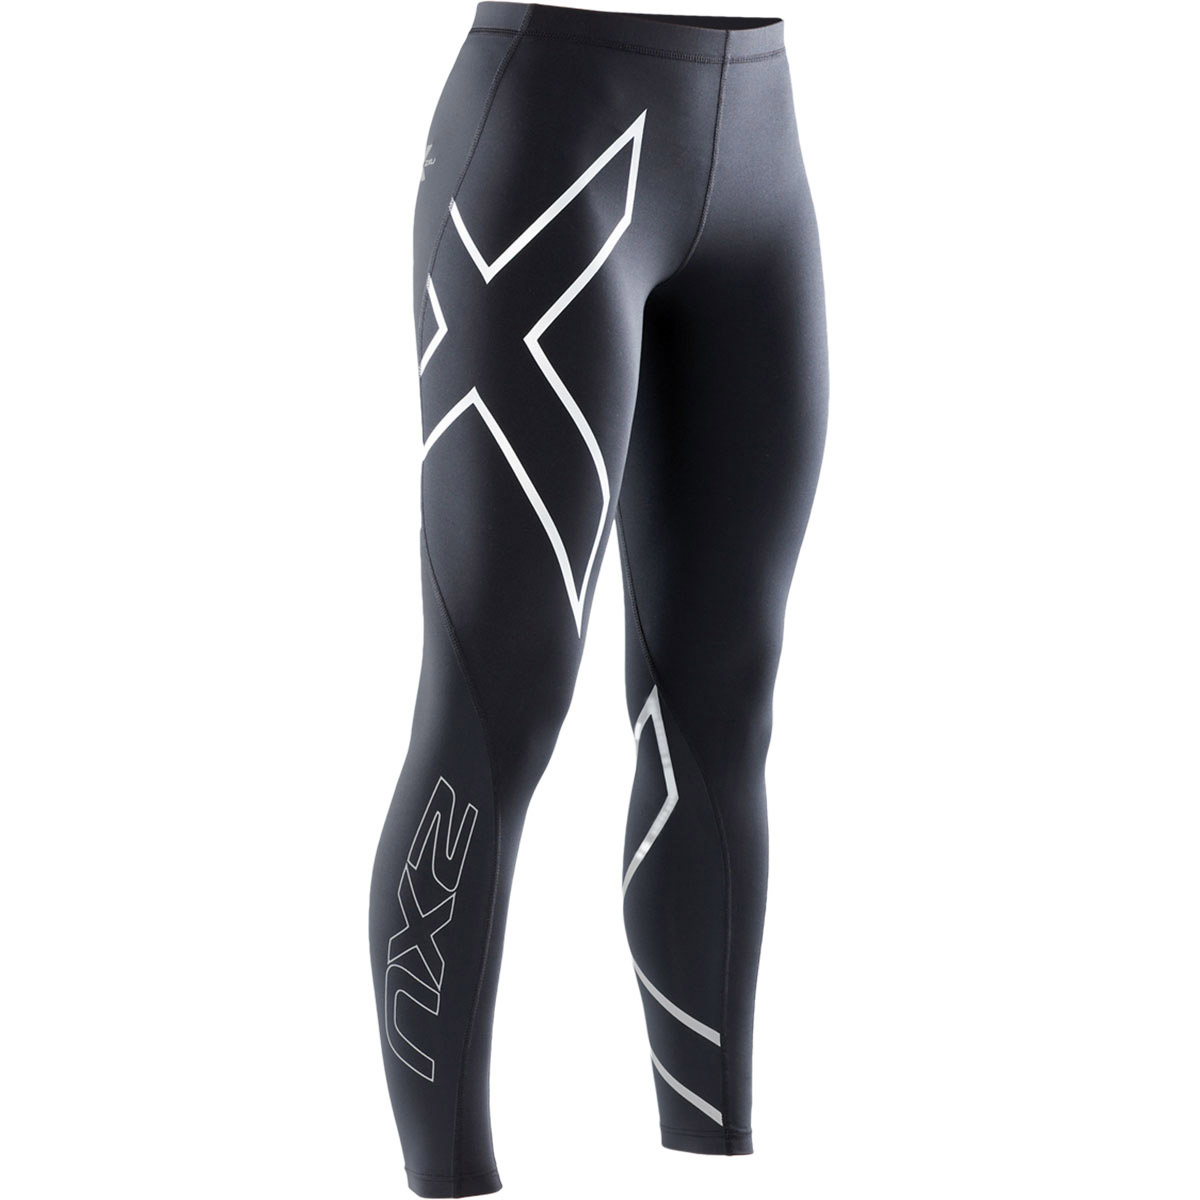 2xu thermal